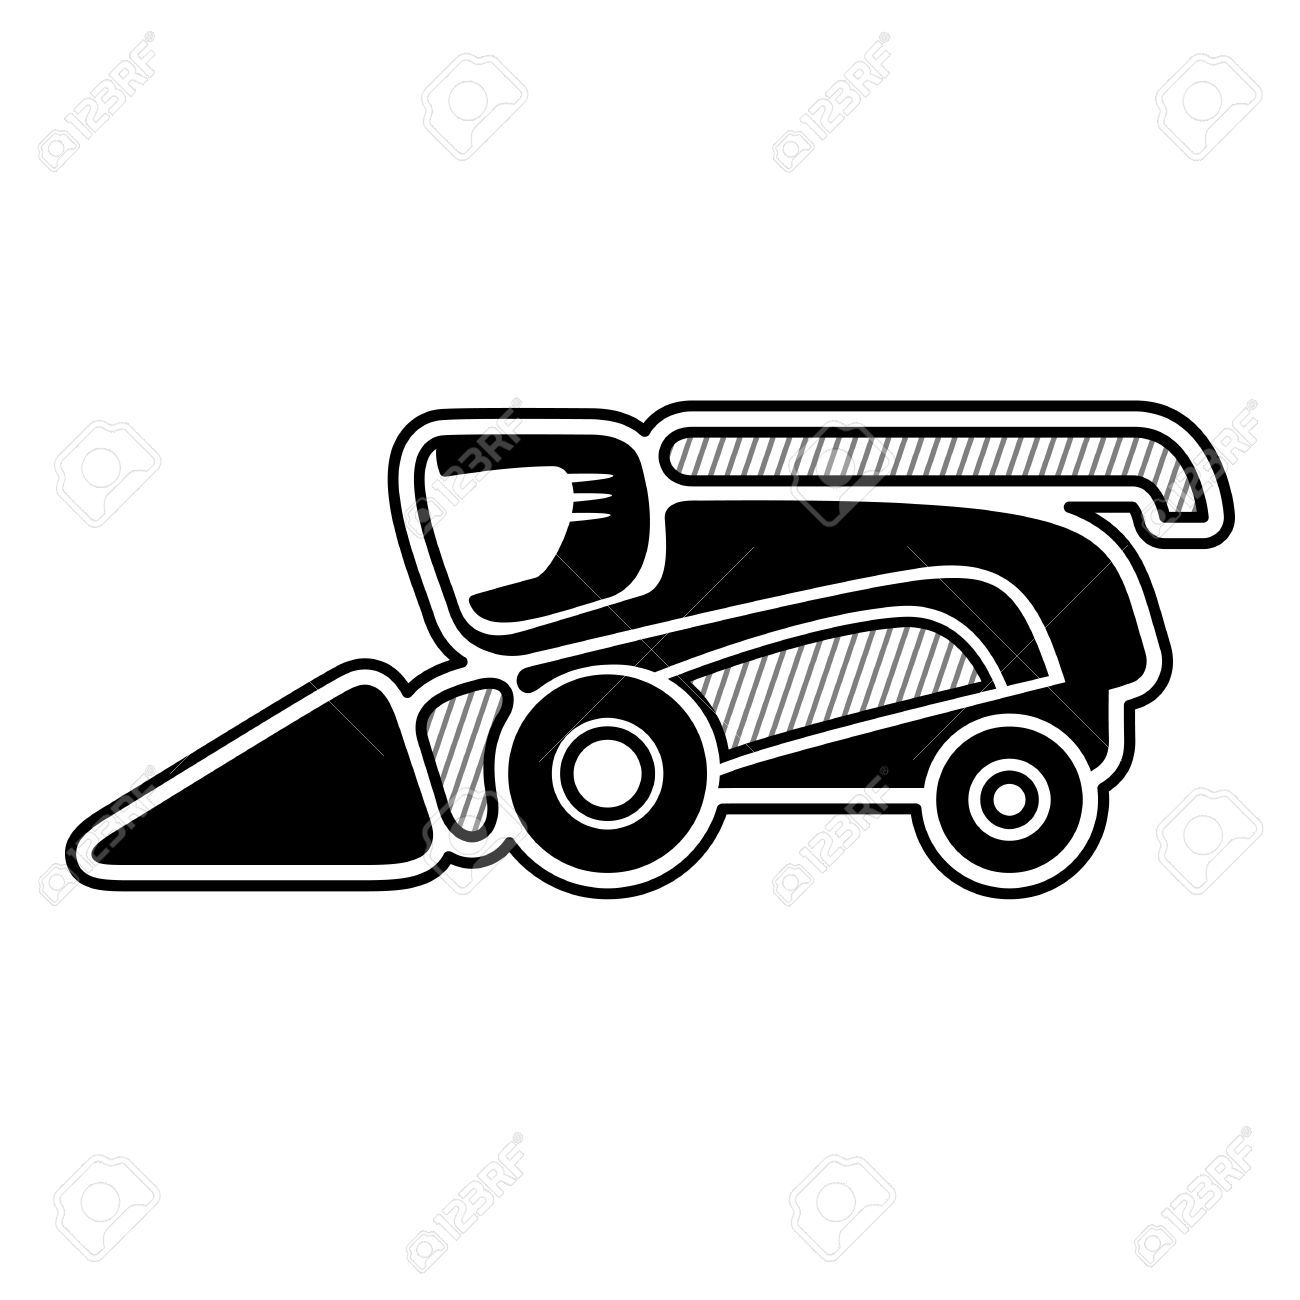 Combine harvester clipart black and white clipart library Combine harvester » Clipart Portal clipart library